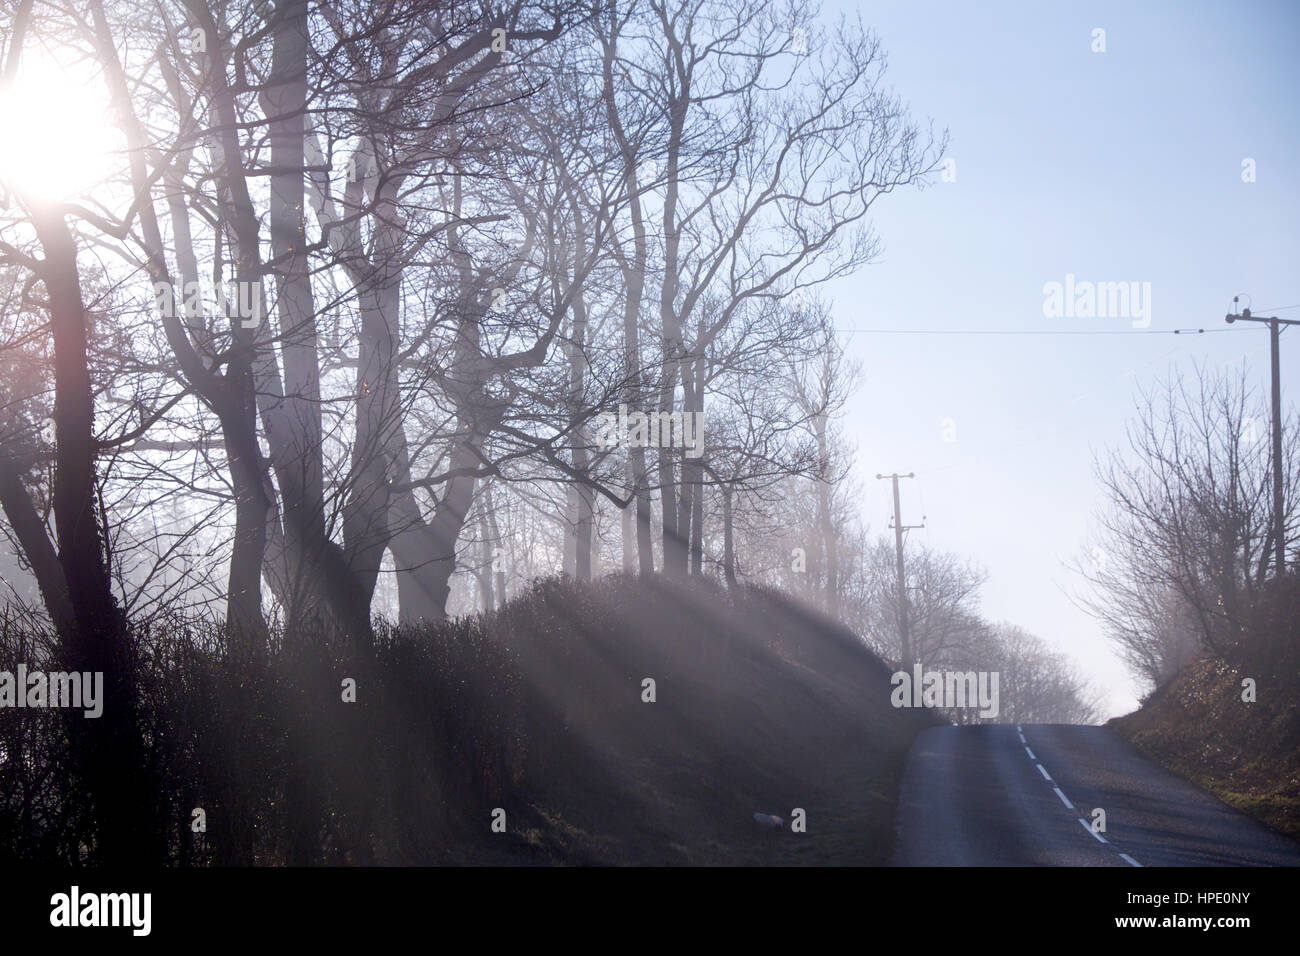 rays of low winter sunlight streaming through trees, shafts of white light, silhoutted trees, hedge and part of Stock Photo